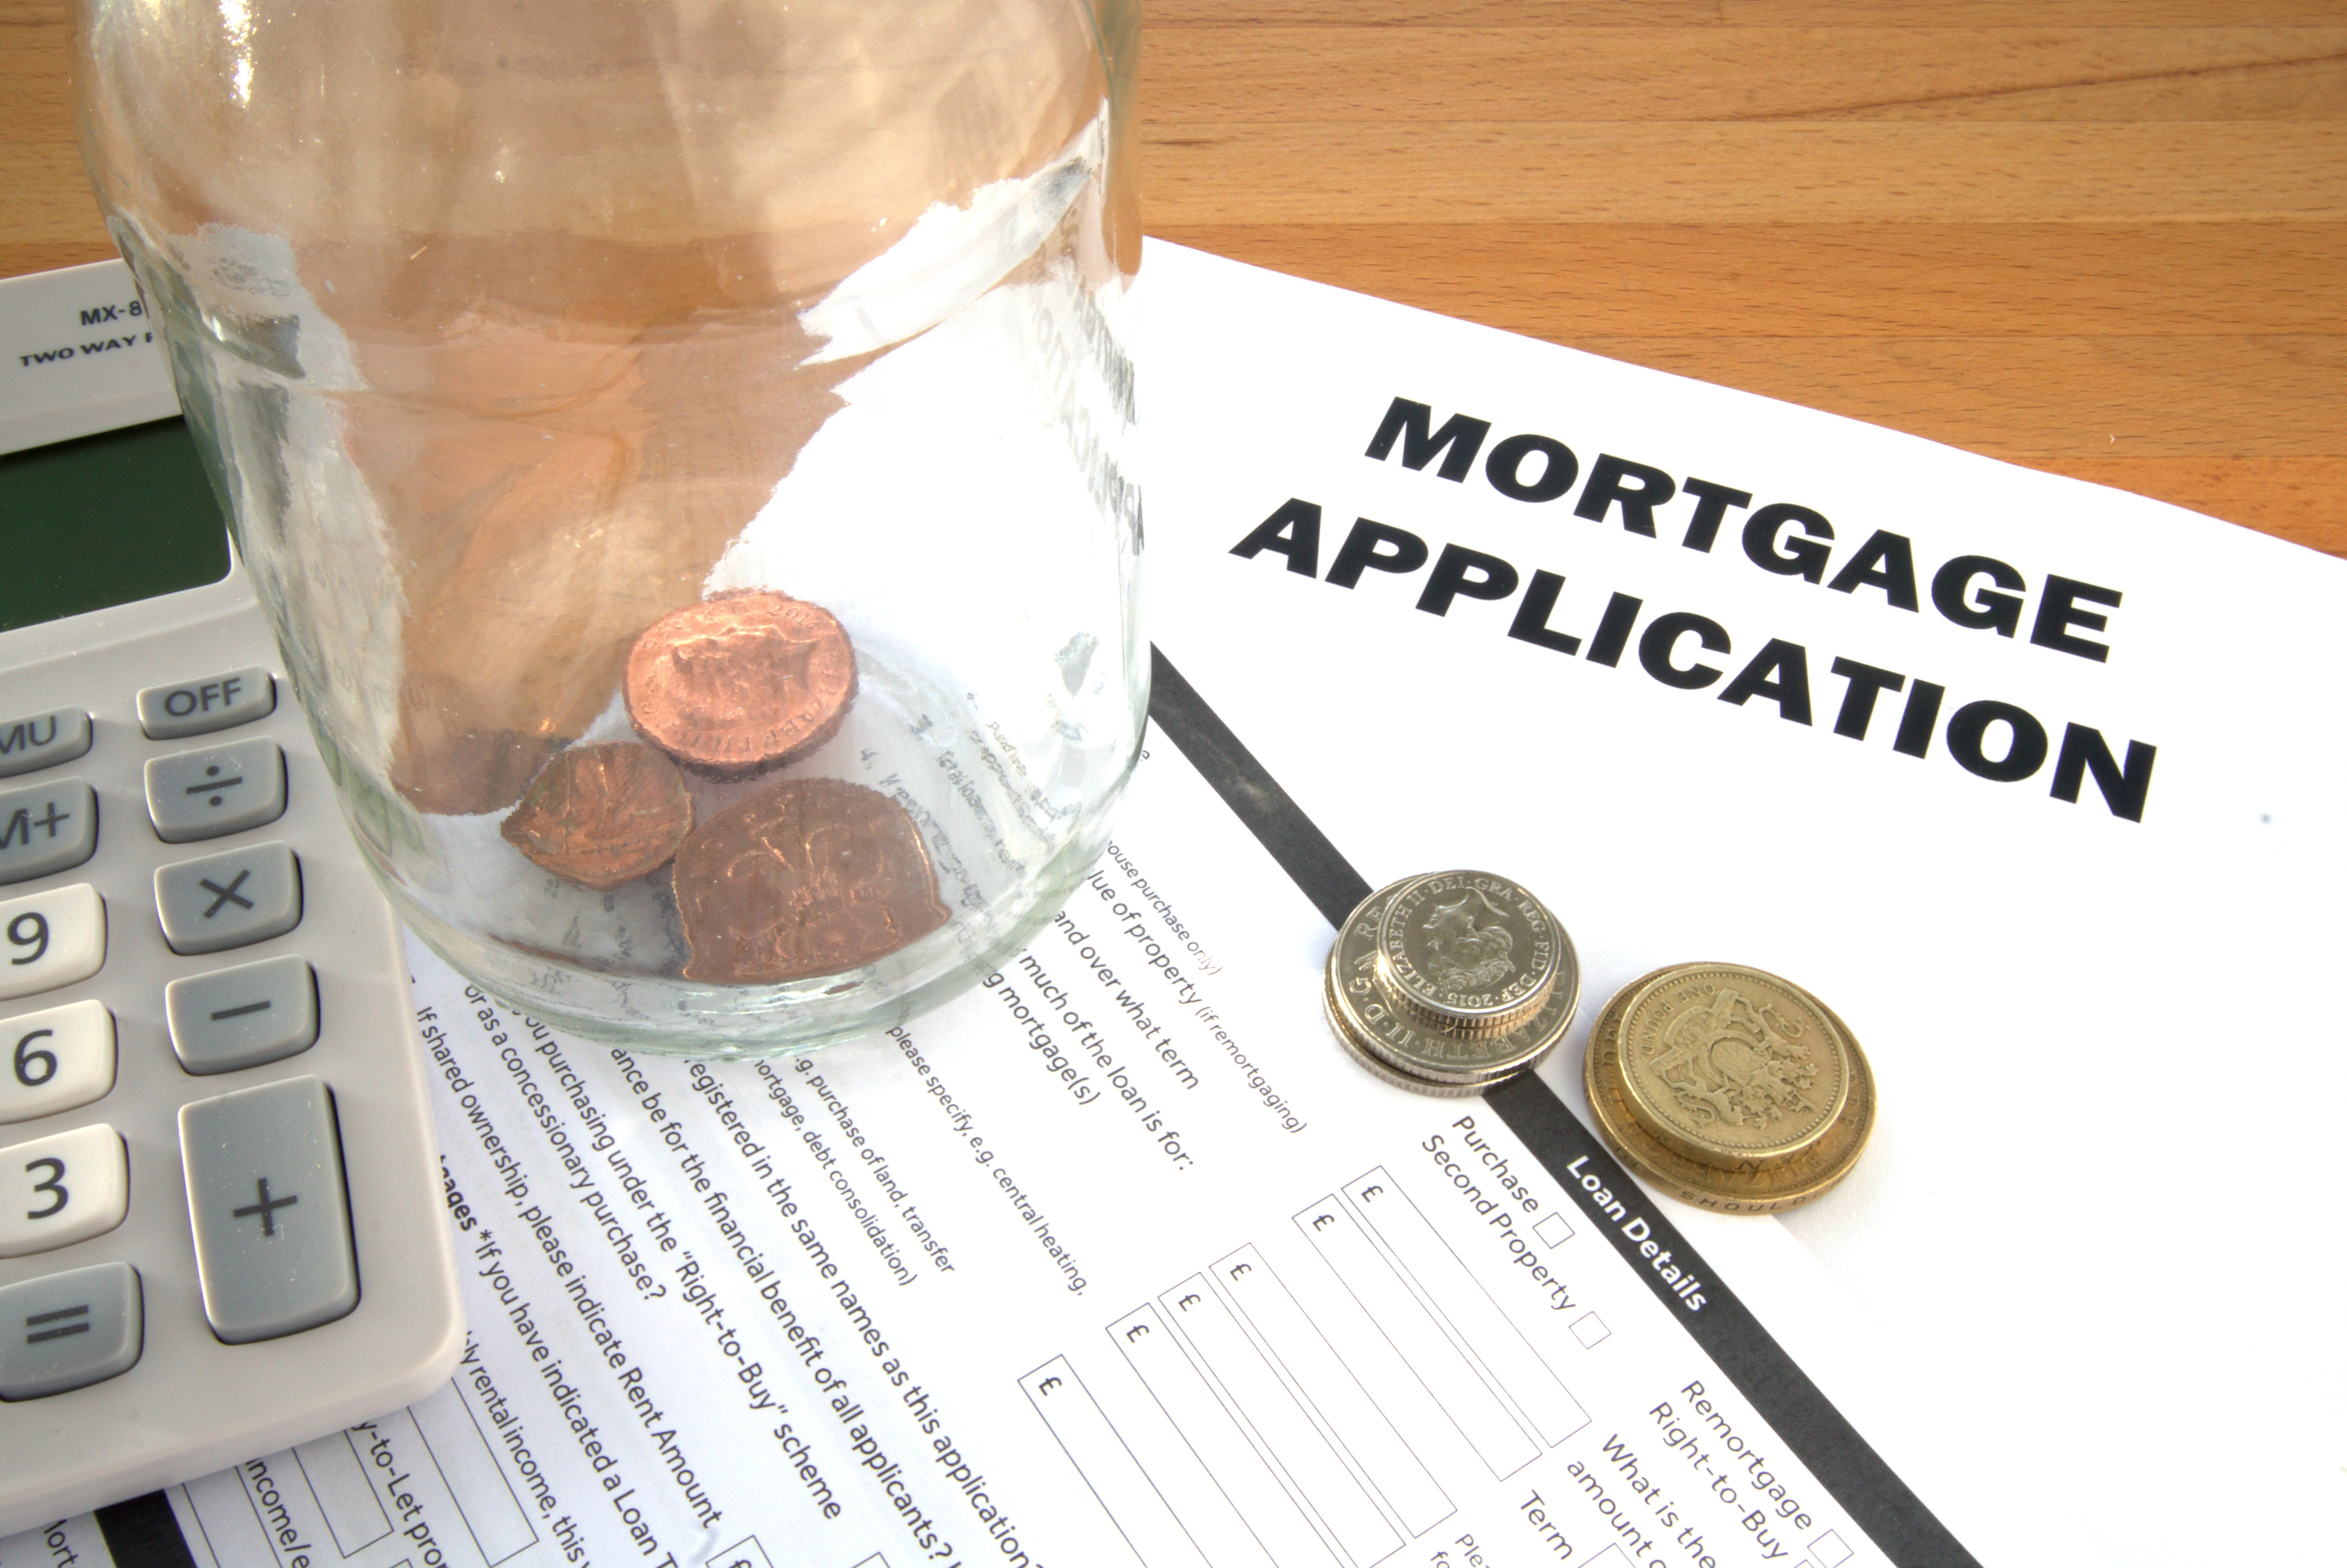 FHA Mortgage Rate Cuts Are Subsidies, Not Tax Relief - Foundation for Economic Education